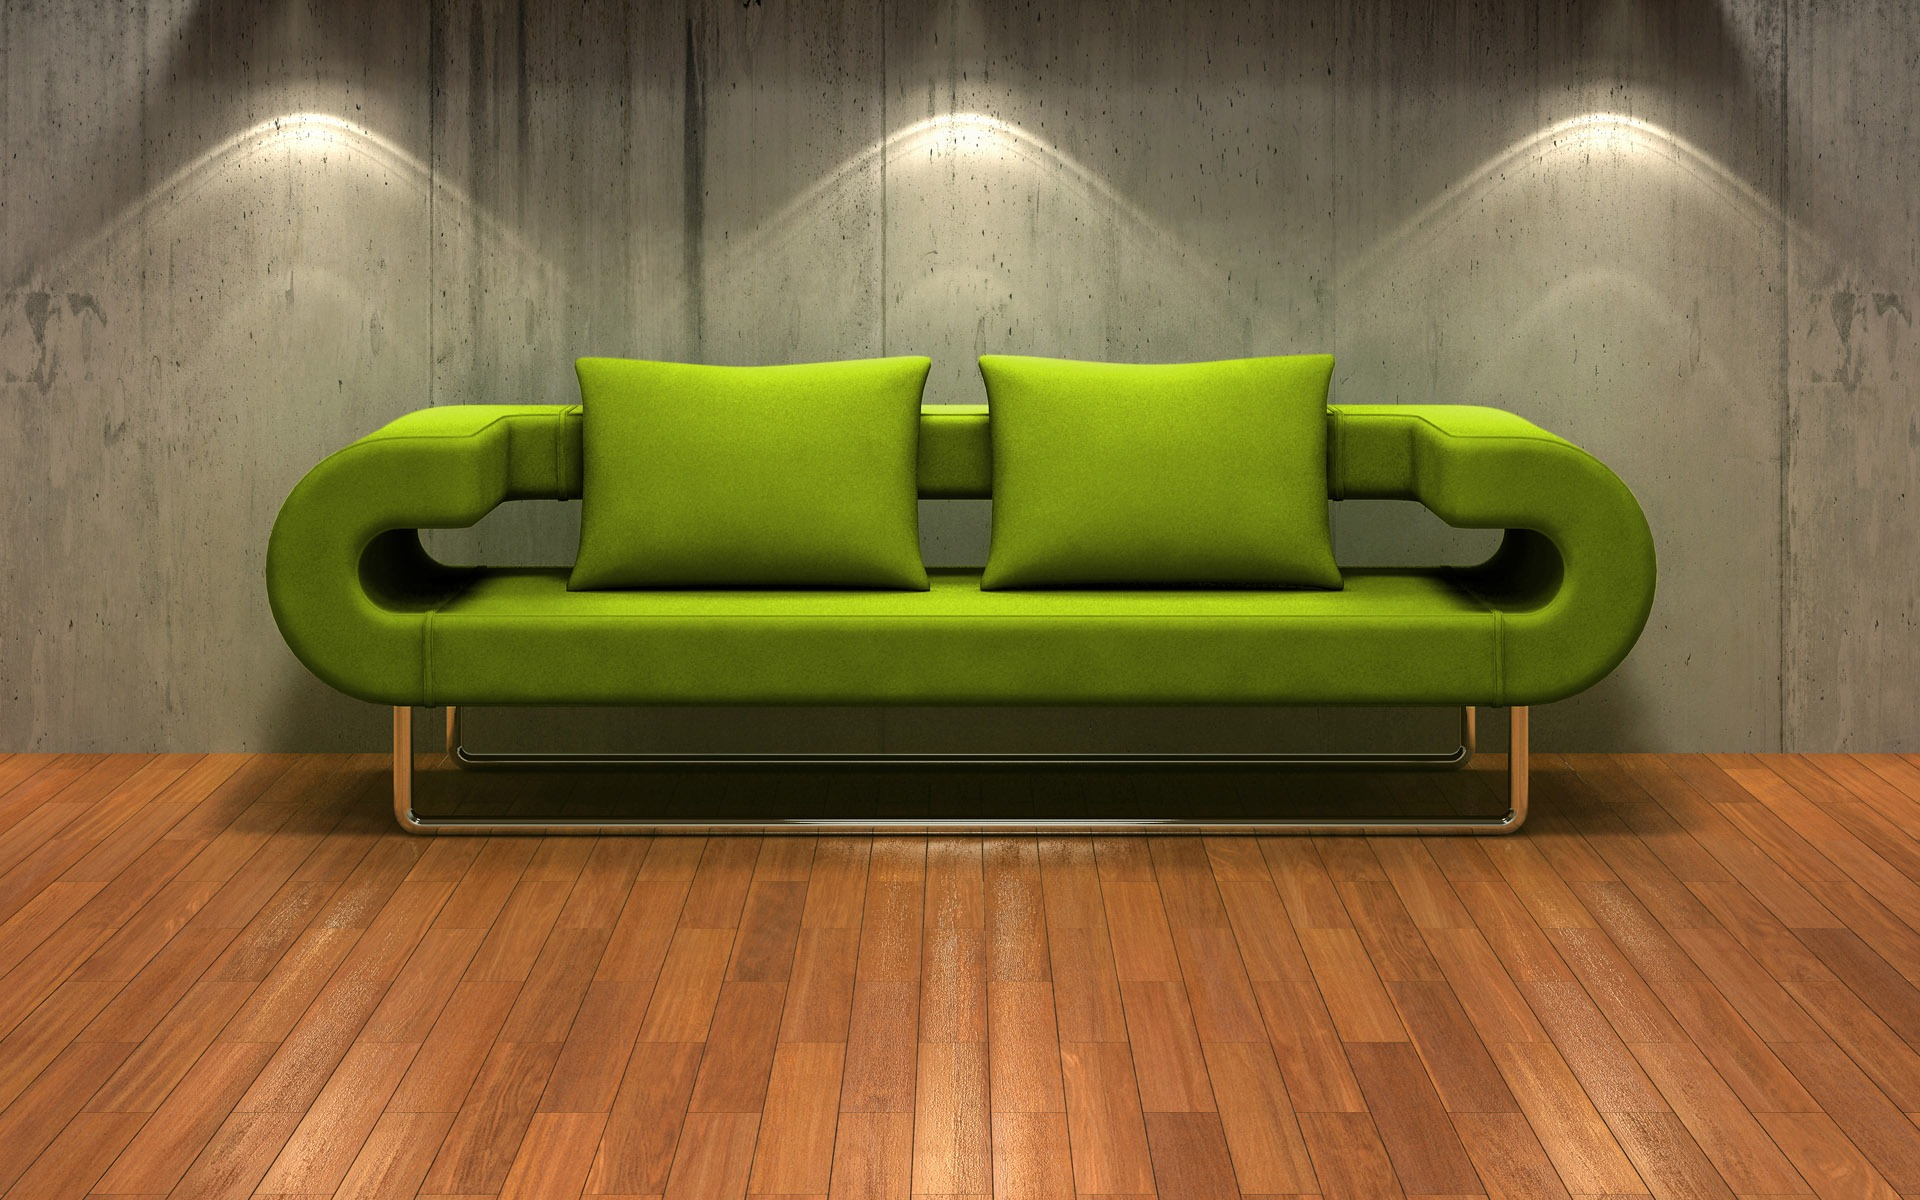 3D Couch Wallpaper Interior Design Other Wallpapers in format